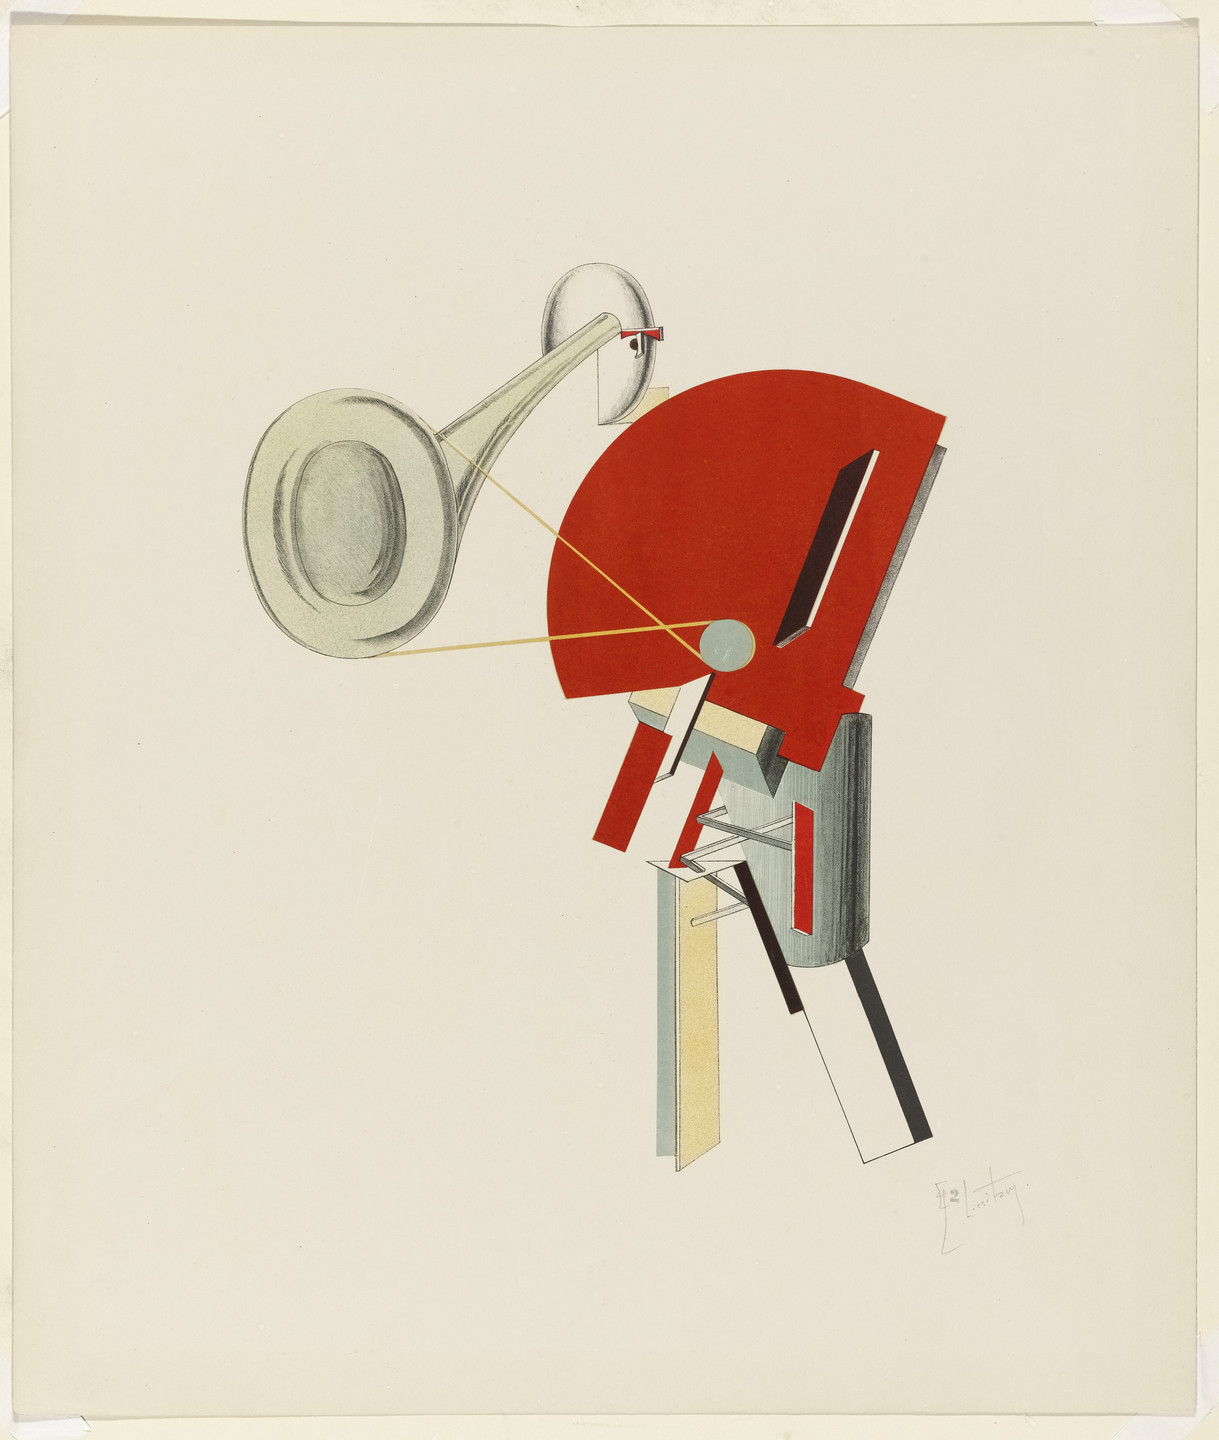 El Lissitzky. Announcer (Ansager) from Figurines: The Three-Dimensional Design of the Electro-Mechanical Show Victory over the Sun (Figurinen, die plastische Gestaltung der elektro-mechanischen Schau Sieg über die Sonne). 1920–21, published 1923